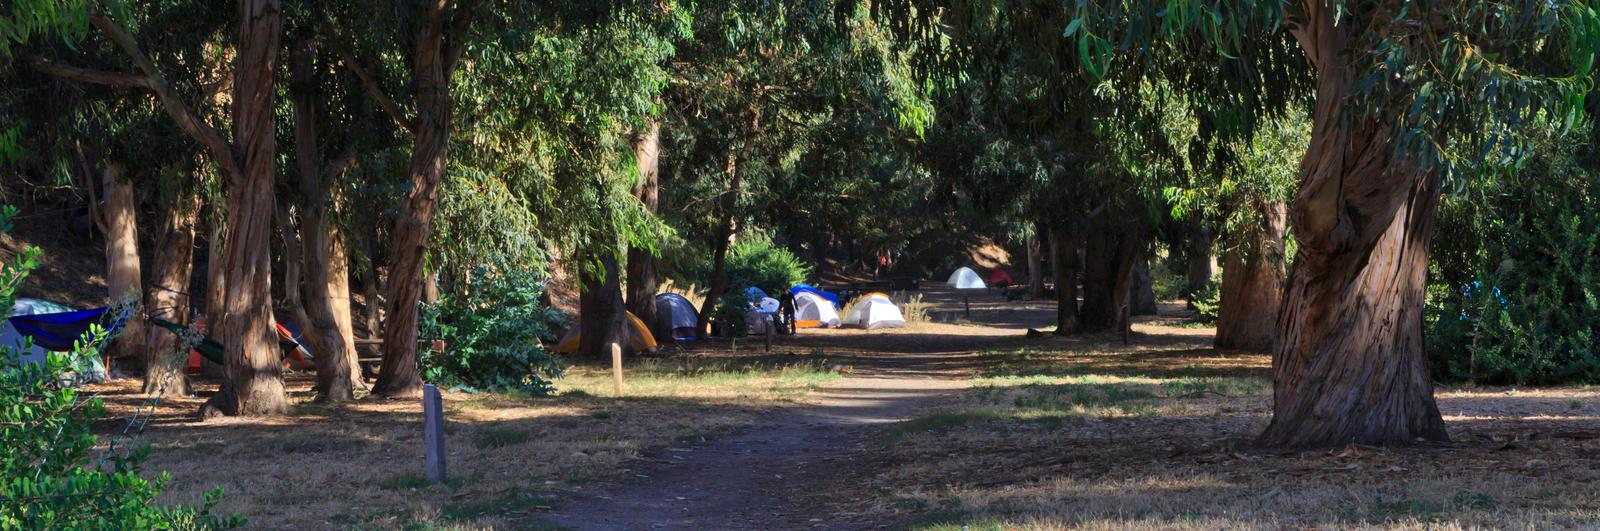 Tents in forested area.Scorpion campground